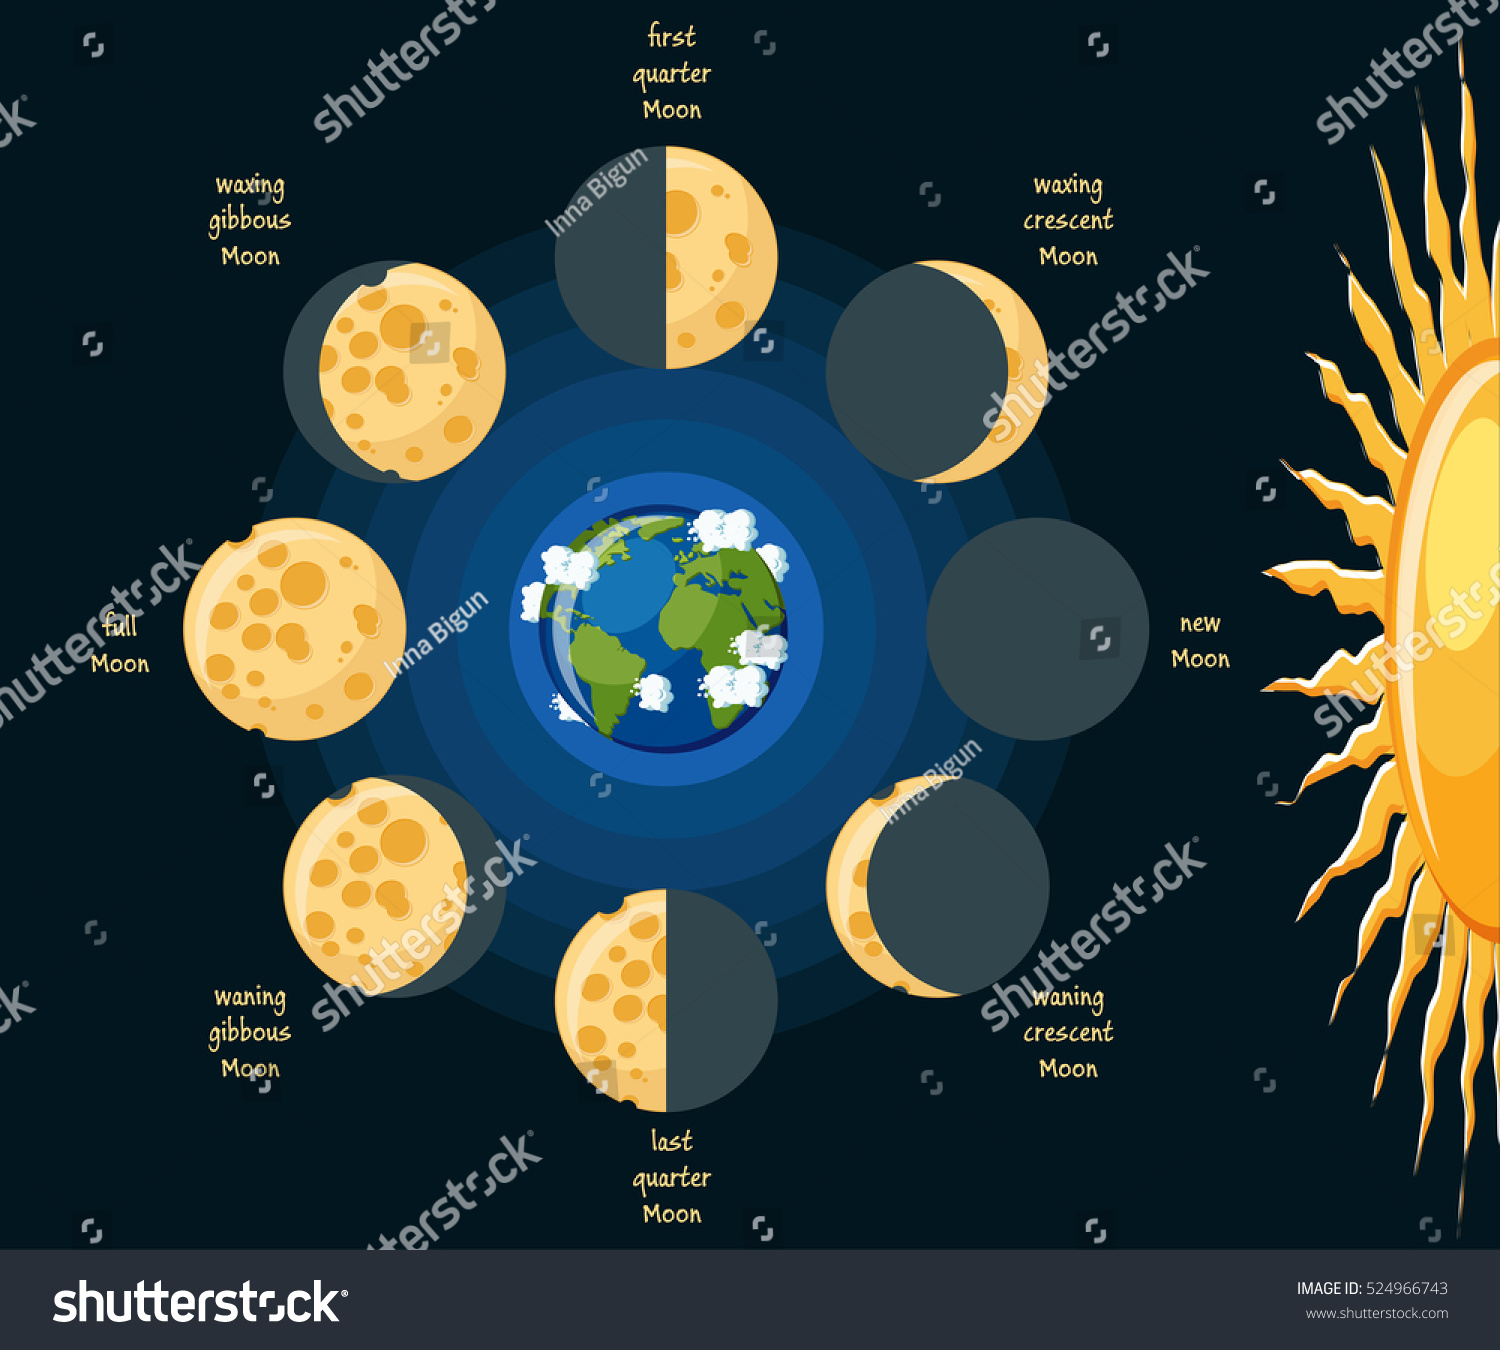 Basic moon phases diagram cheese moon stock vector 524966743 basic moon phases diagram cheese moon in its different phases depending on position relative to pooptronica Gallery